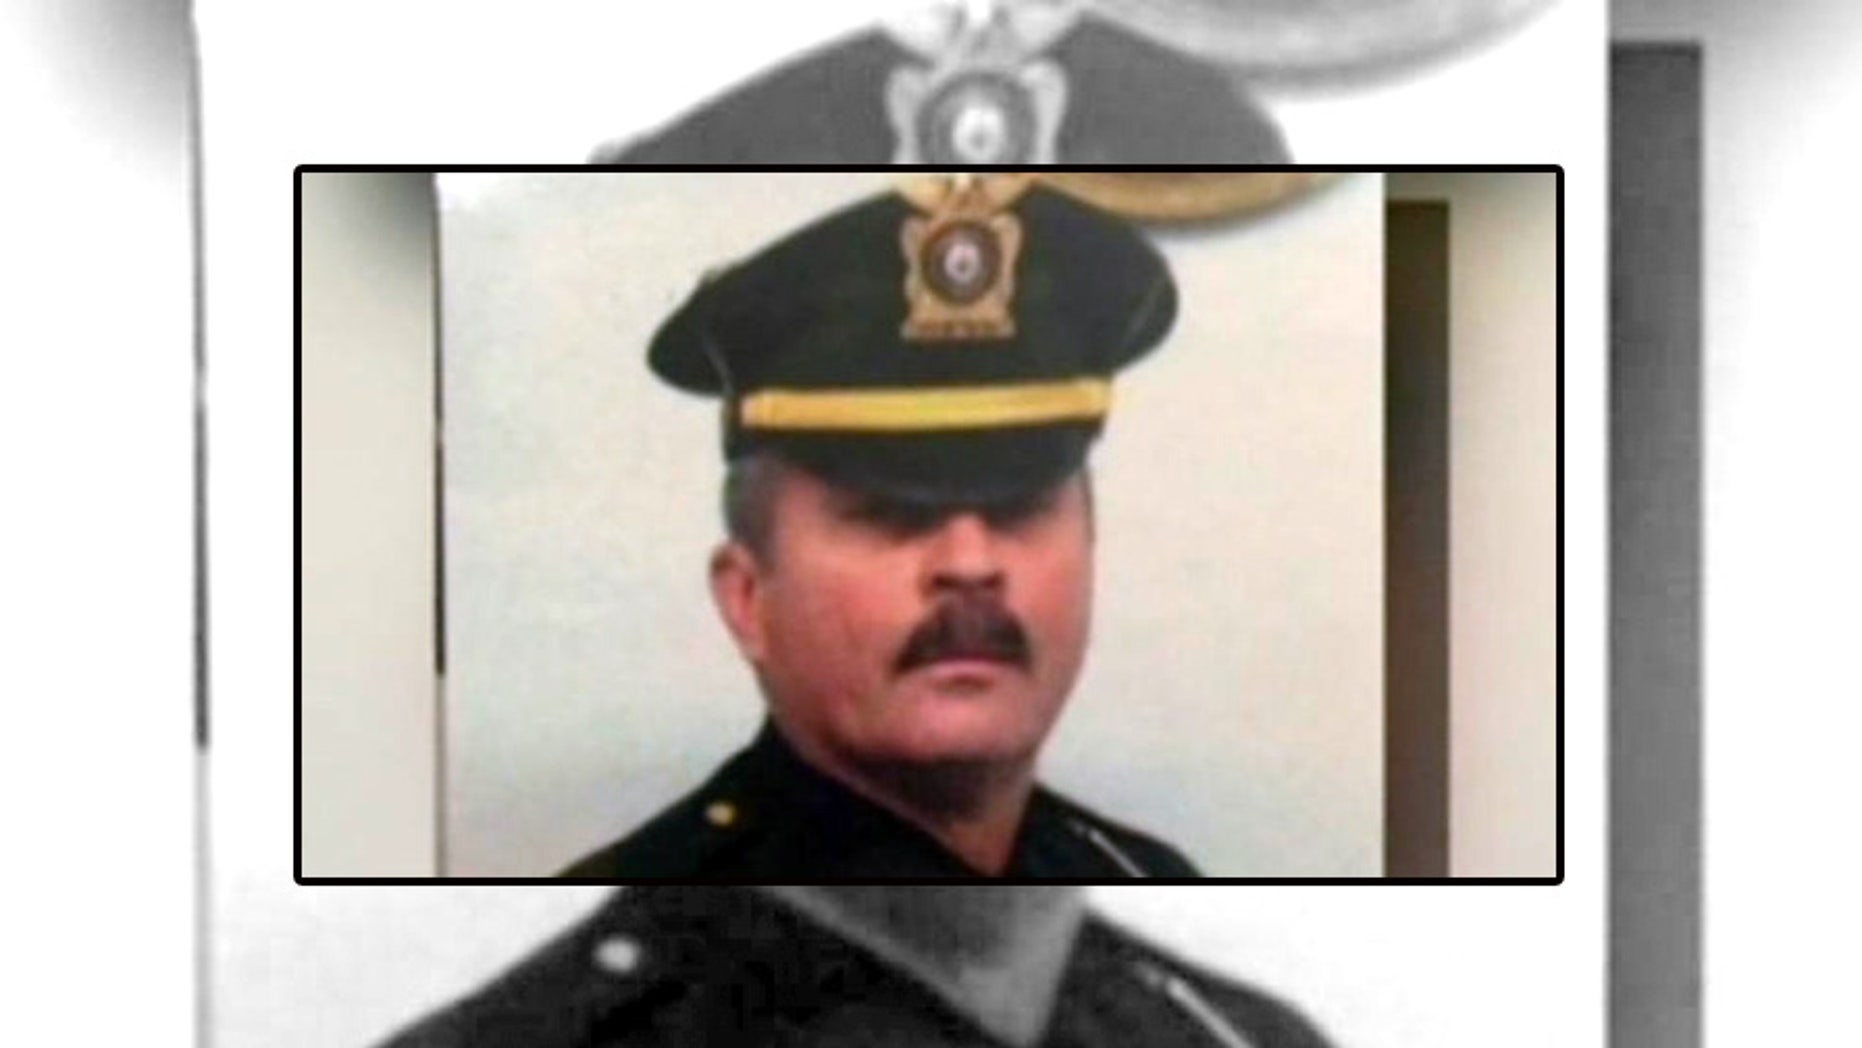 Frank Nucera, 60, is the retired Bordentown Township police chief. (Bordentown Township Police Facebook)